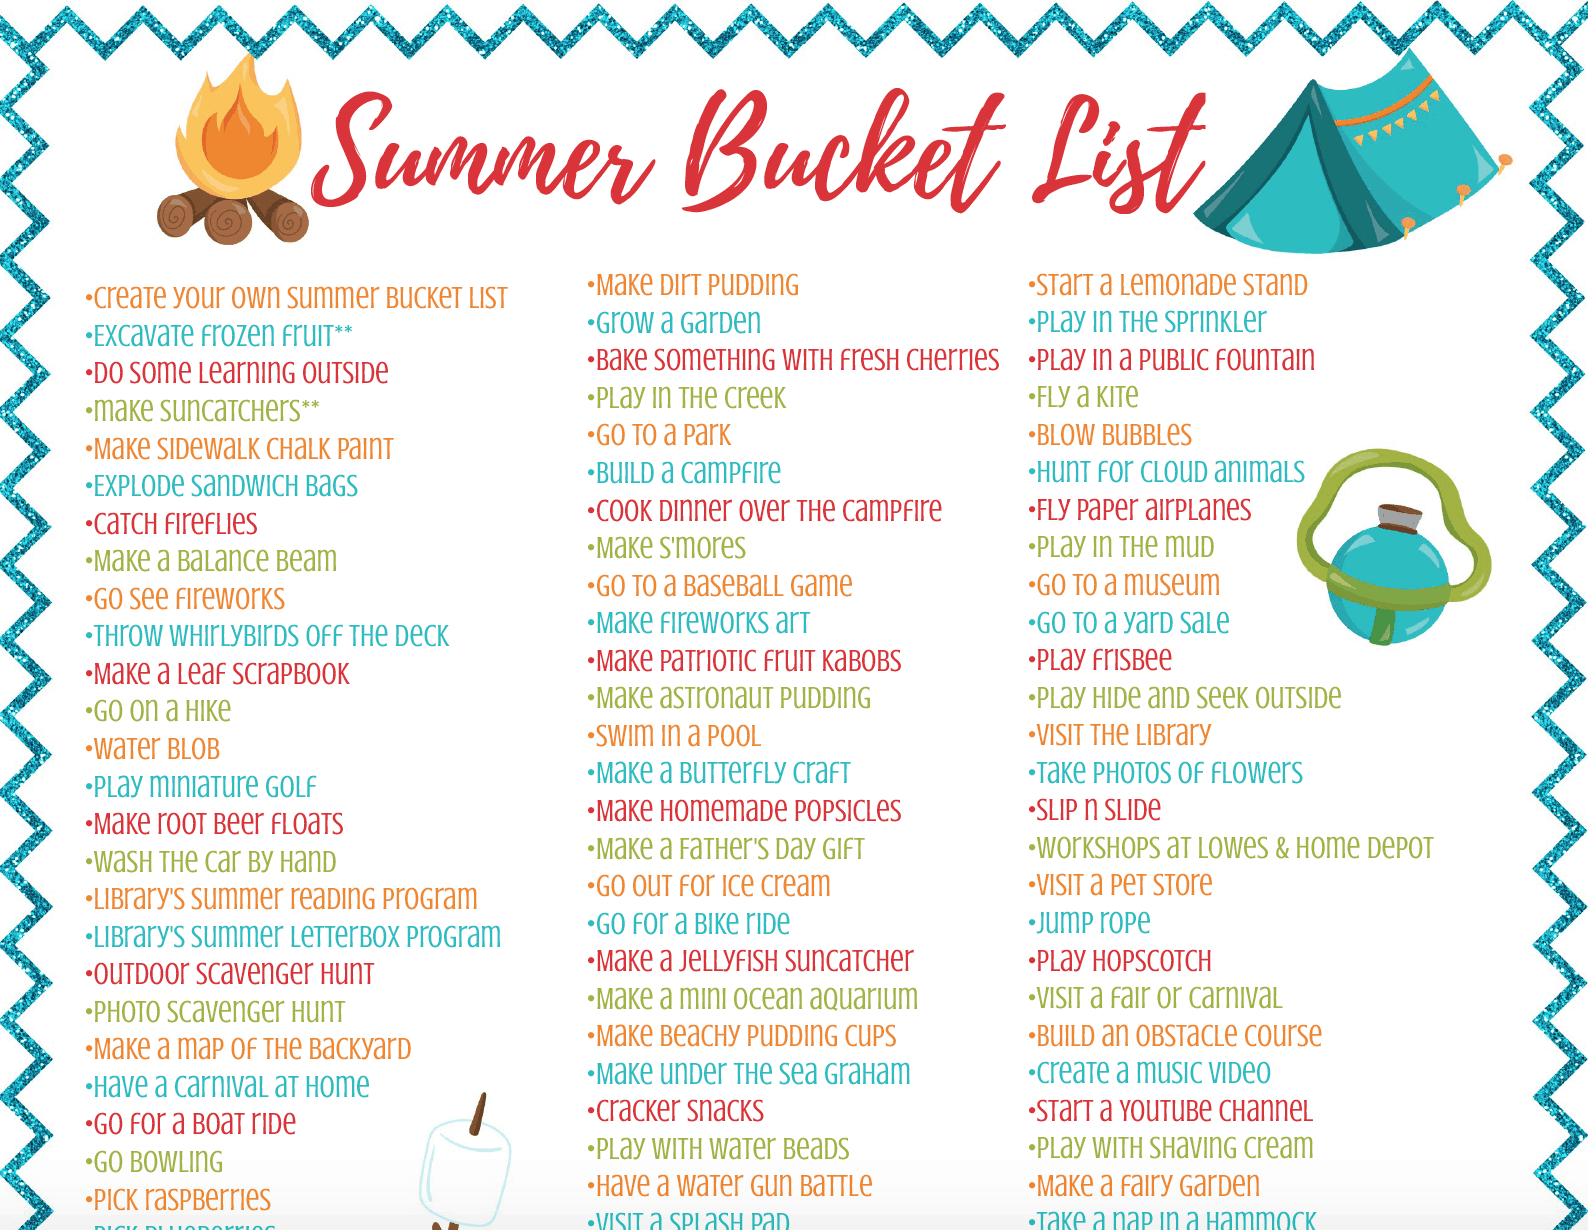 Summer Bucket List for Kids & Families - Feels Like Home™